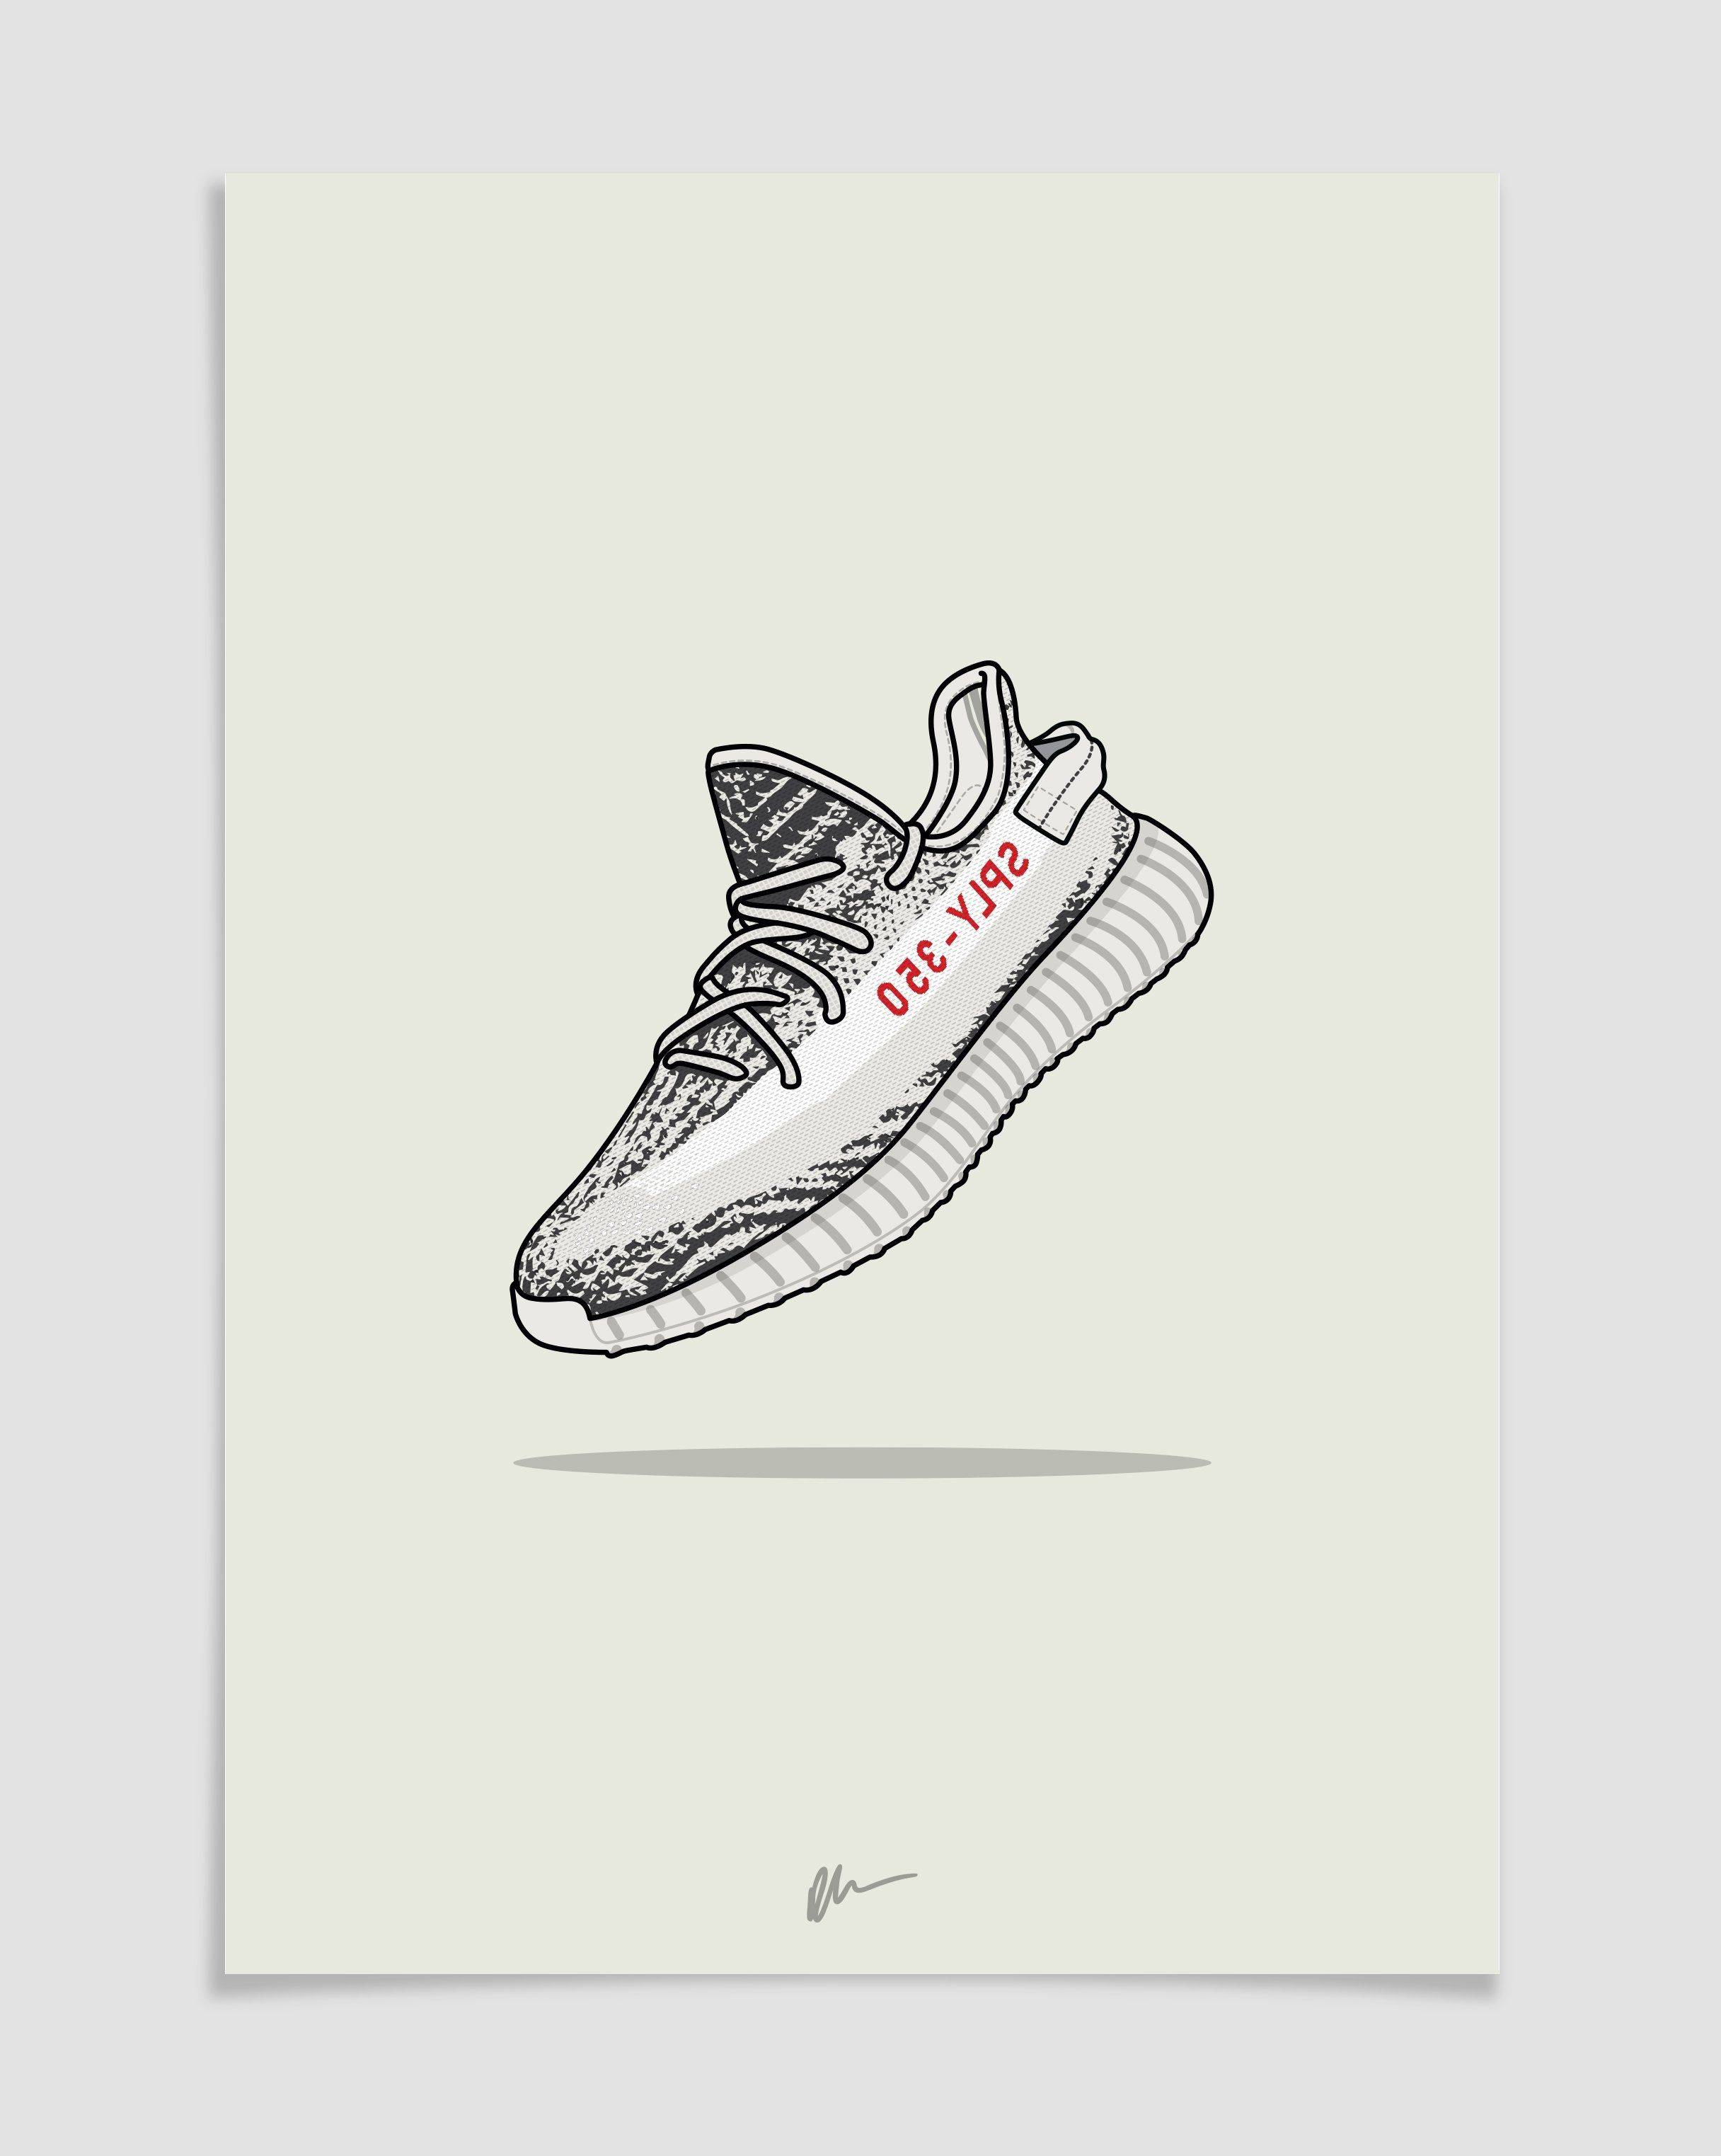 6e01fd3af Originally created Yeezy 350 v2 Zebra CP9654 illustration.The ideal for the  home or office